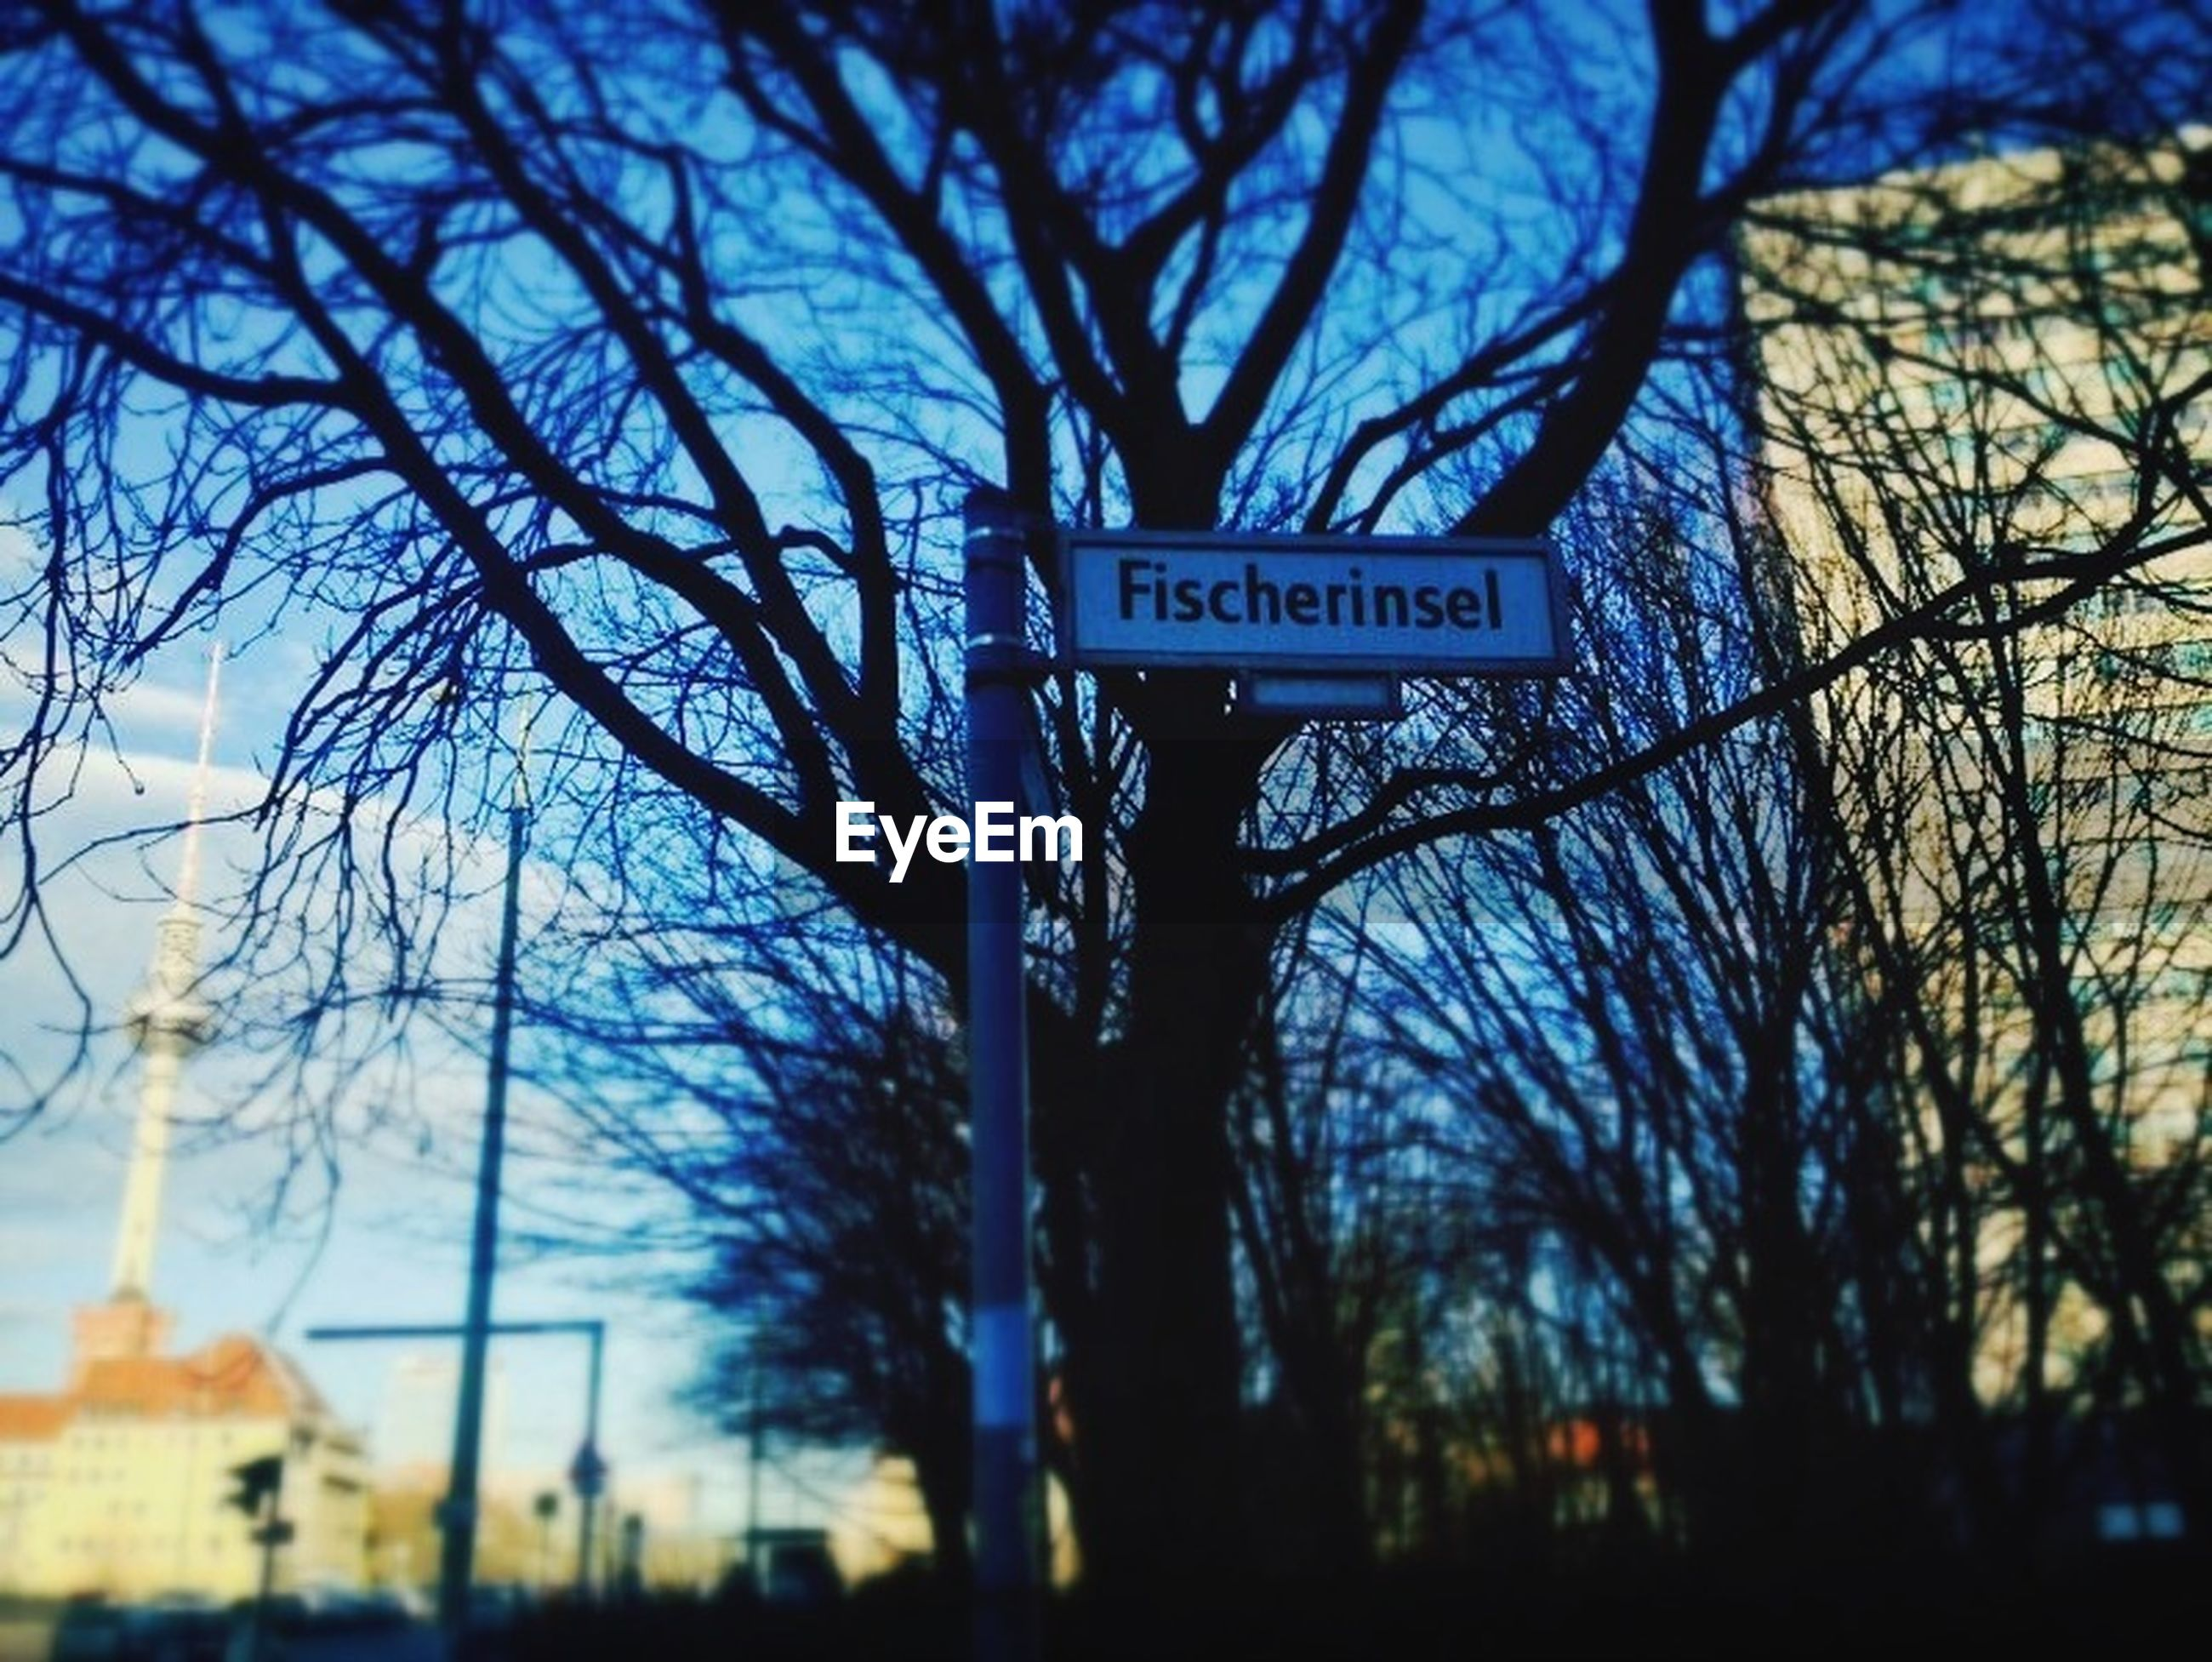 tree, bare tree, branch, text, communication, low angle view, built structure, western script, guidance, building exterior, road sign, architecture, information sign, sign, silhouette, sky, city, no people, directional sign, outdoors